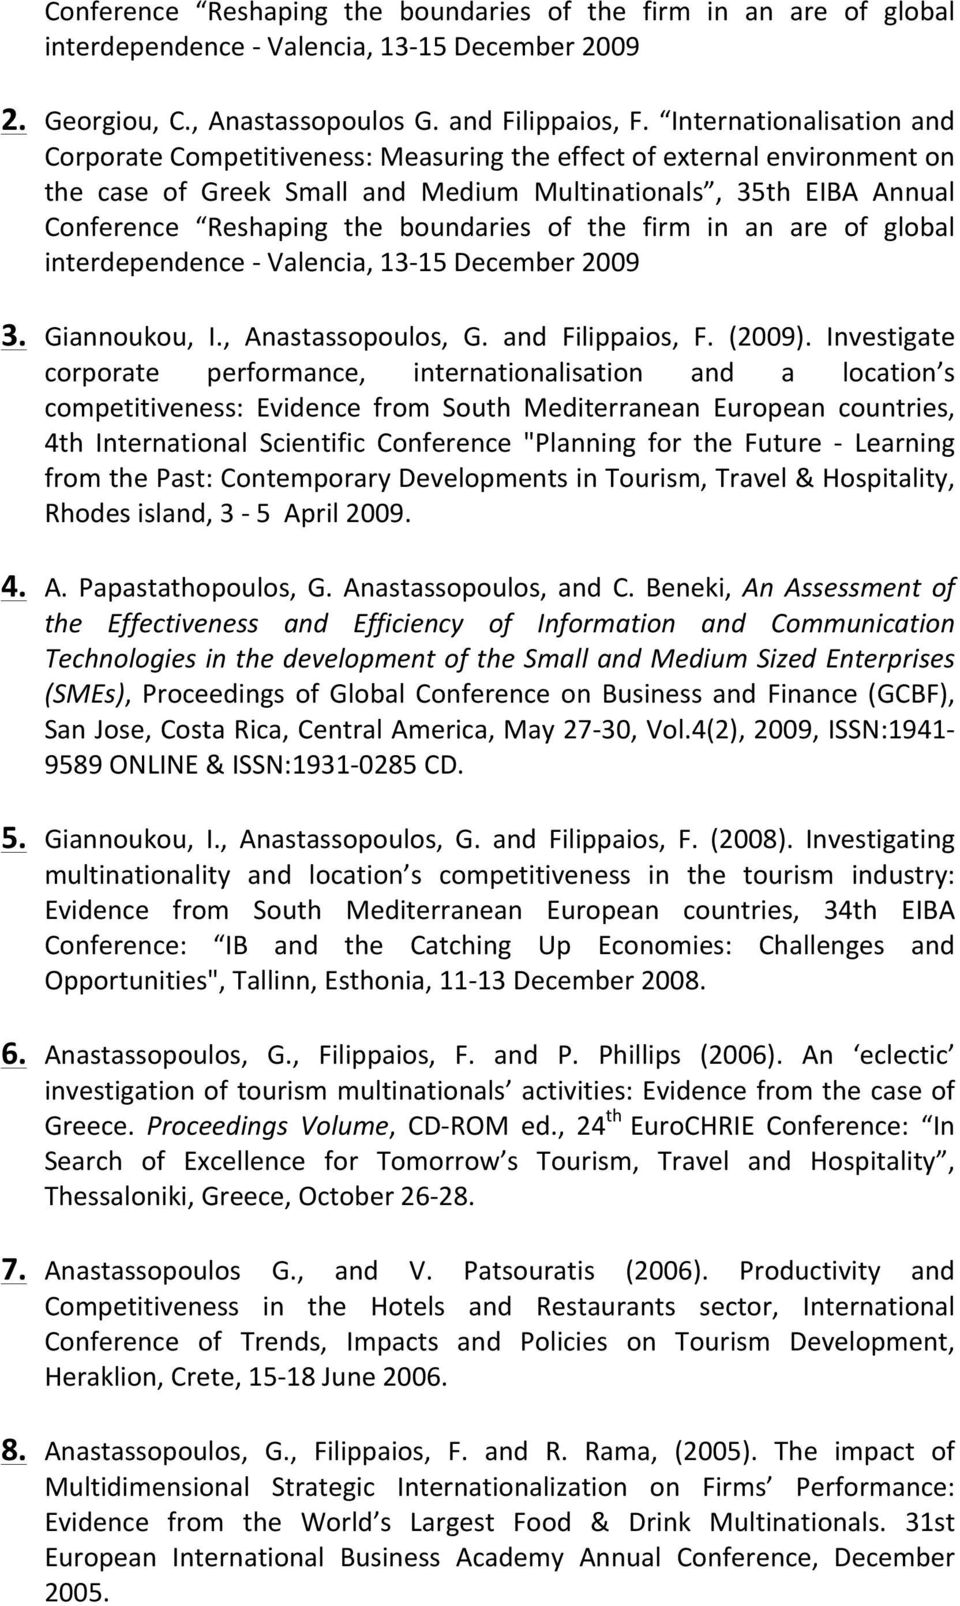 boundaries of the firm in an are of global interdependence - Valencia, 13-15 December 2009 3. Giannoukou, I., Anastassopoulos, G. and Filippaios, F. (2009).